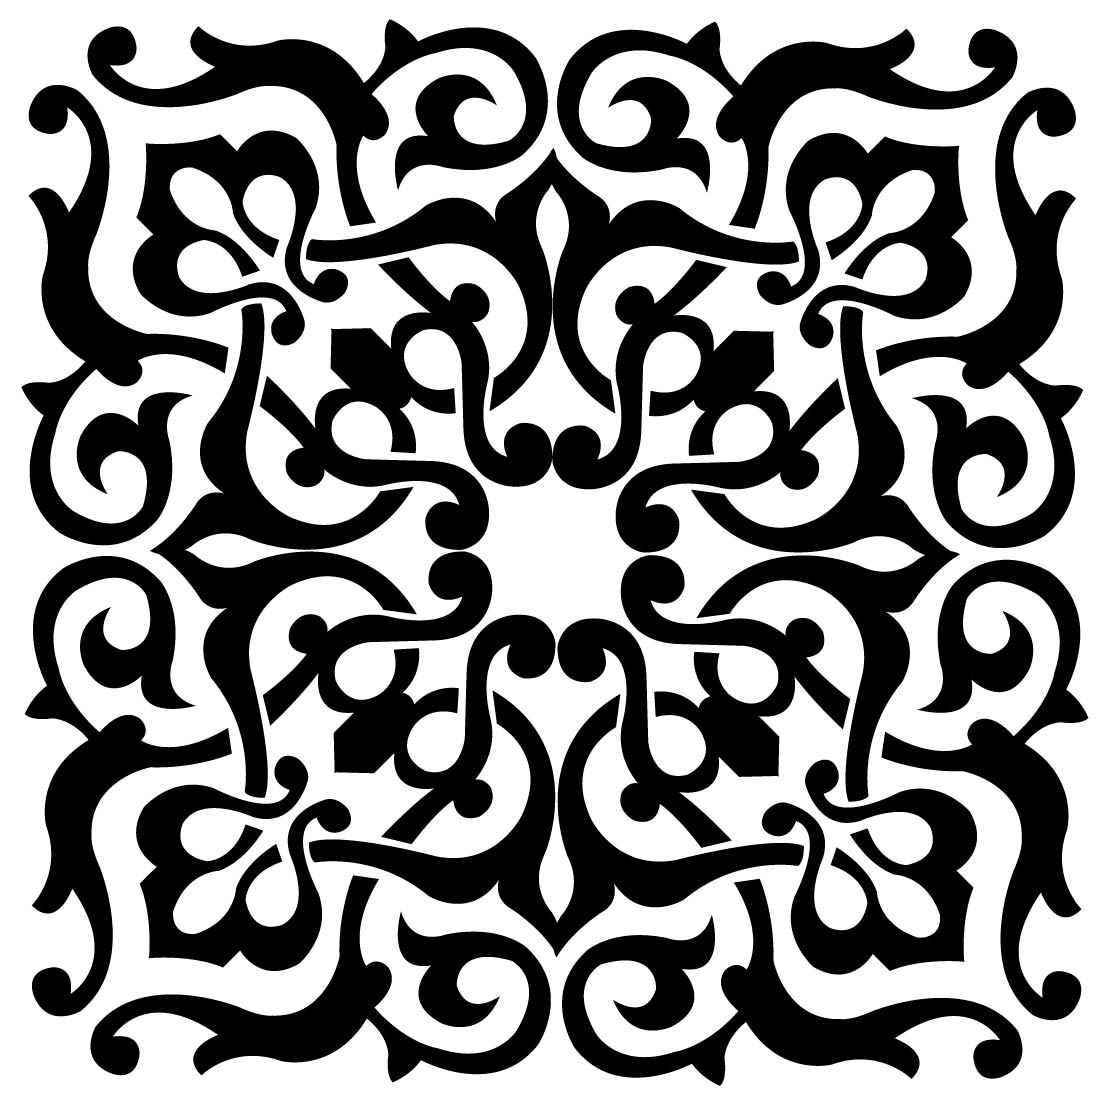 Islamic Arabesque Patterns http://khafiyat.blogspot.com/2011_04_01 ...